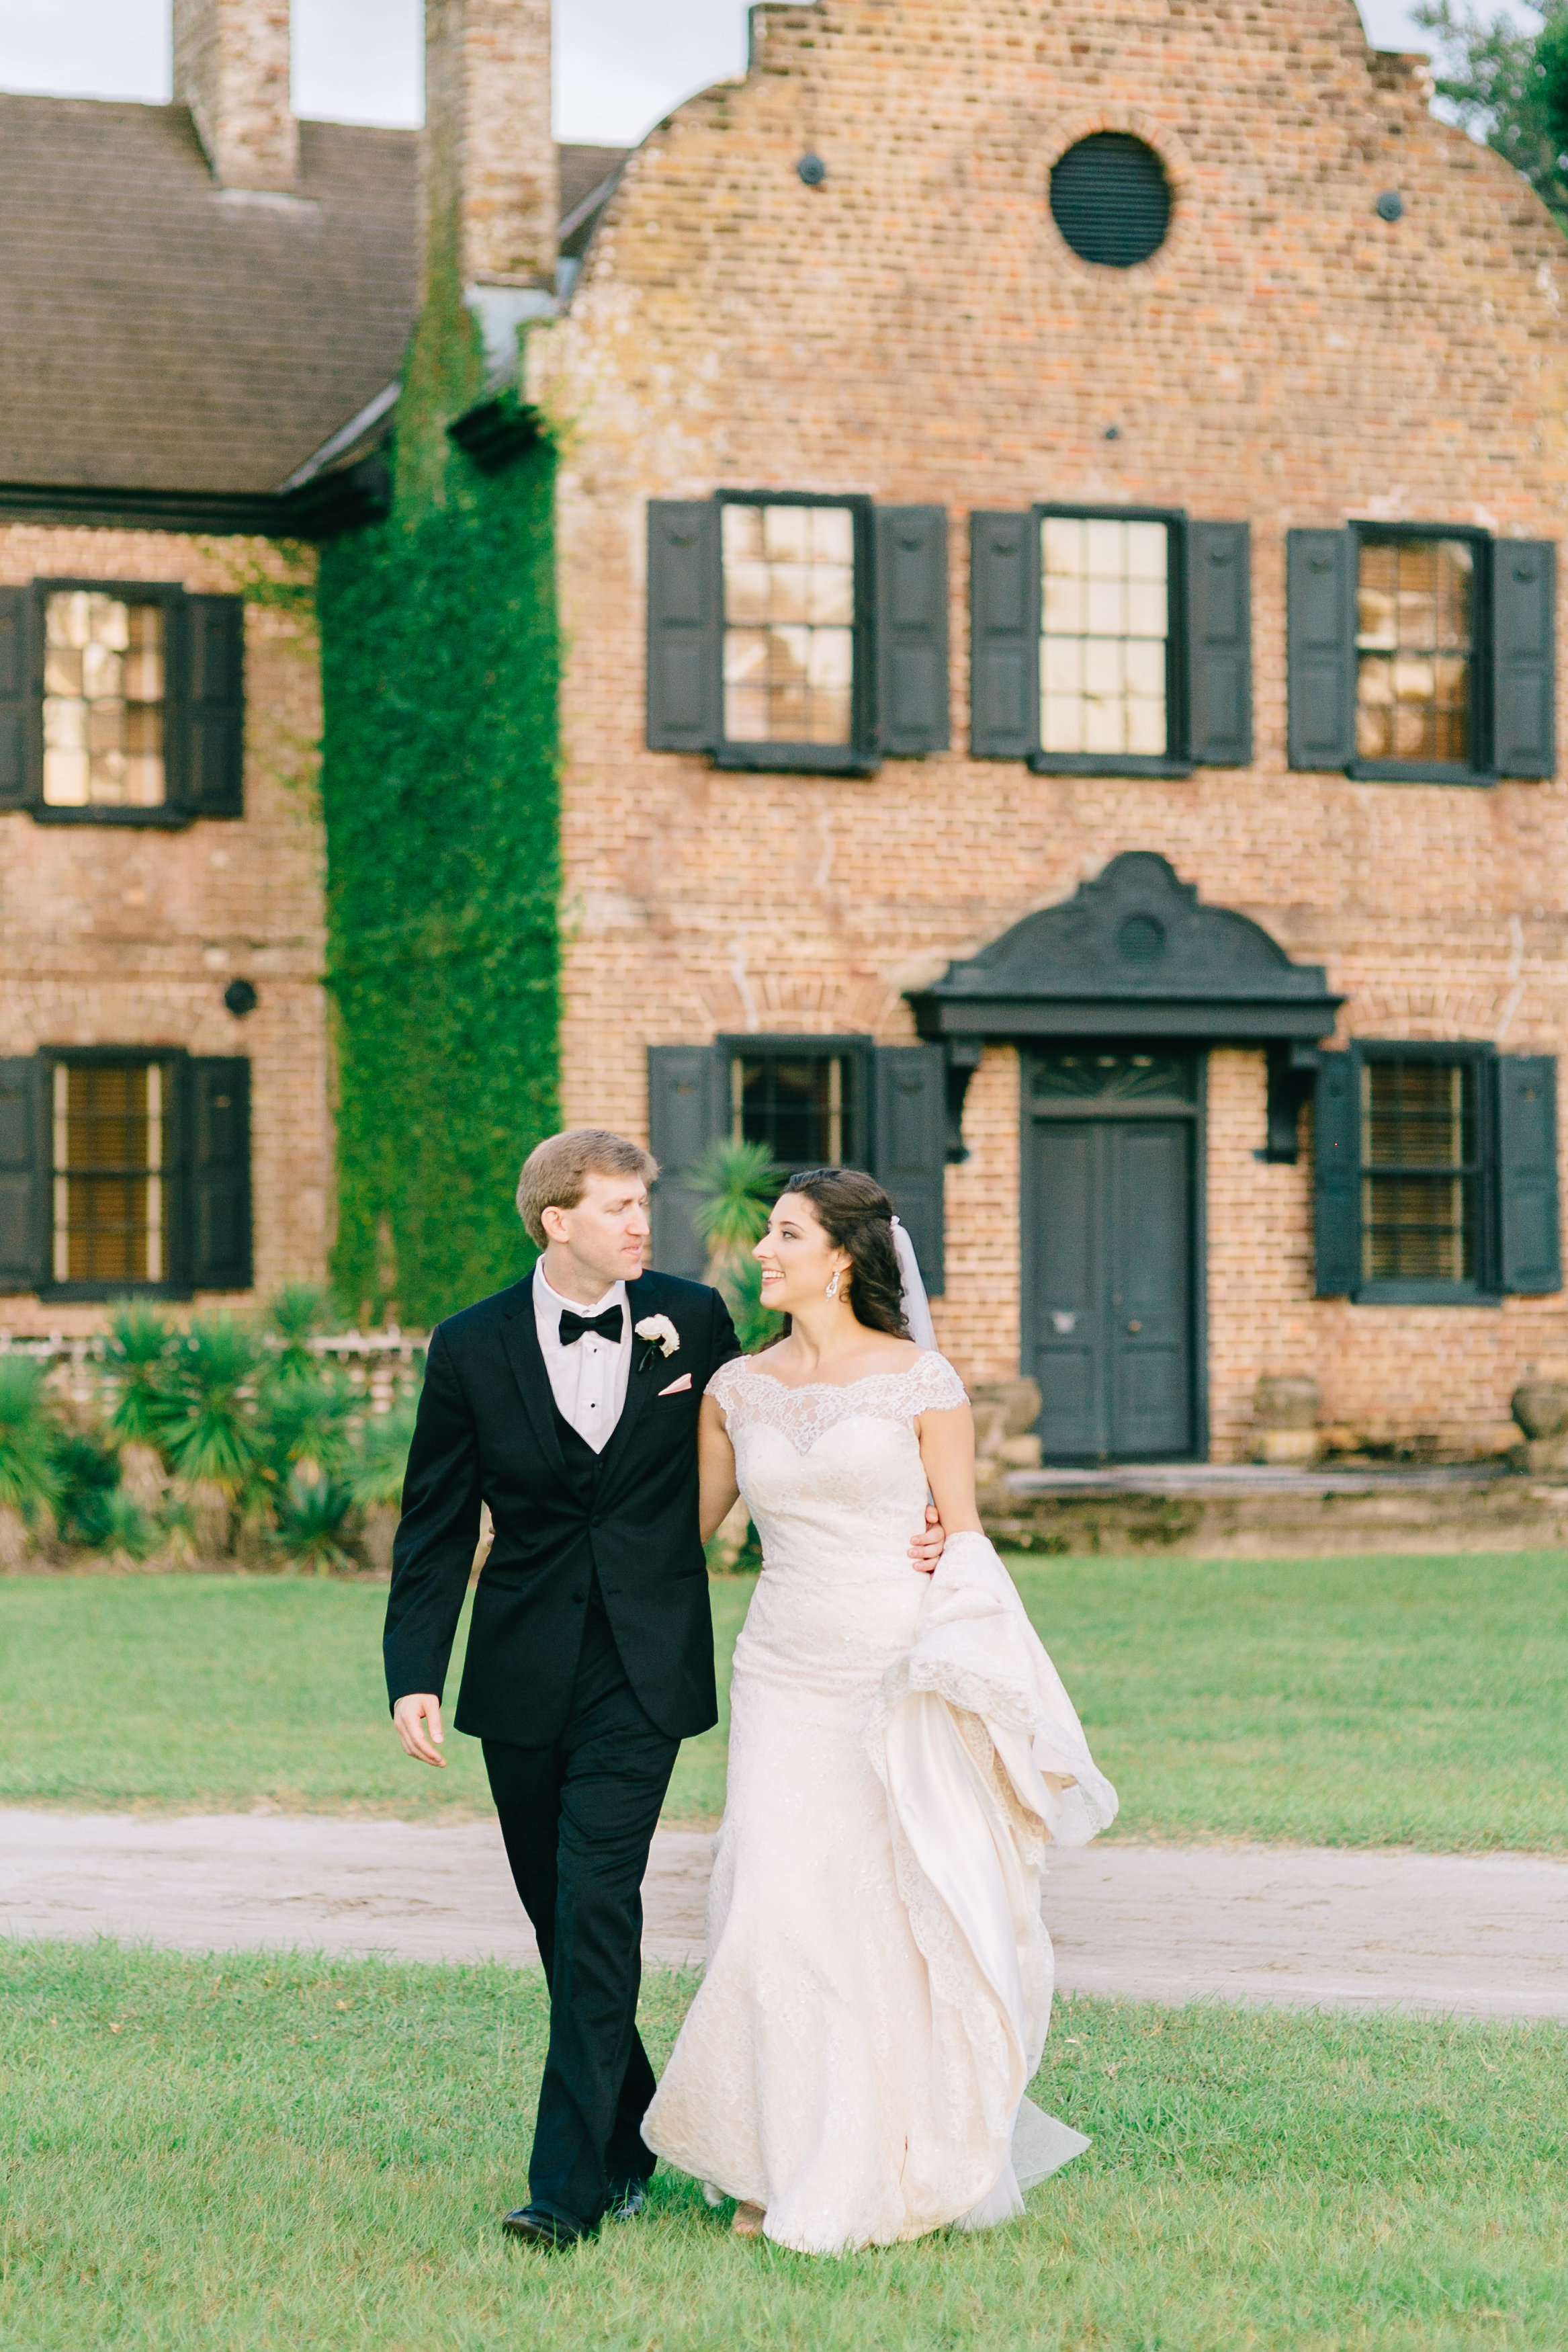 middleton place charleston wedding planners | charleston jewish kosher wedding planners | atlanta jewish kosher wedding planners | greenville jewish kosher wedding planners